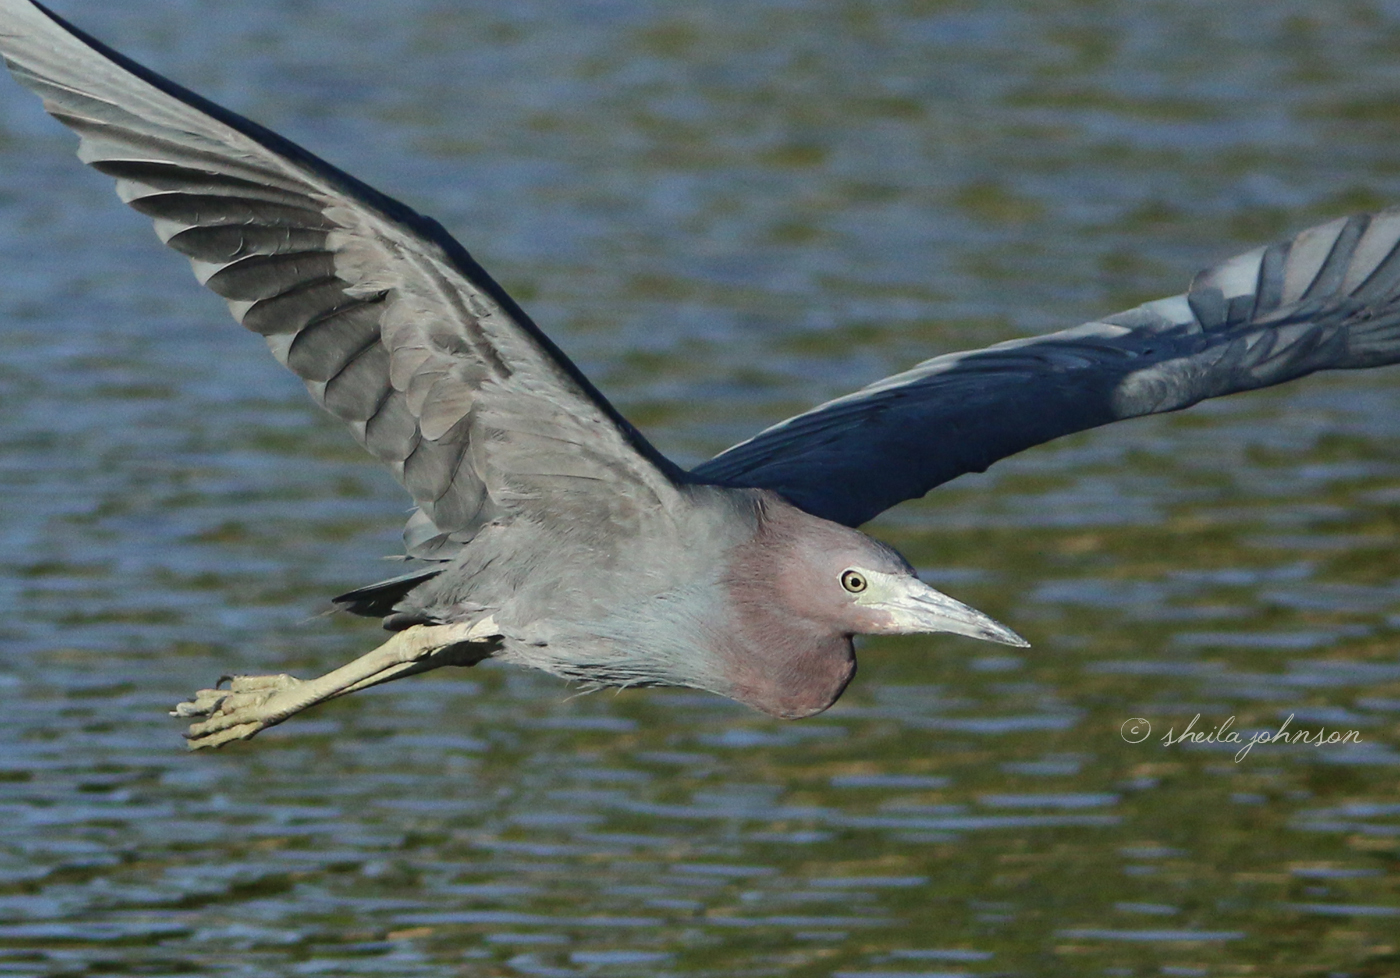 The Banks Of The St. Lucie River Are A Popular Feeding Habitat For Many Bird Species, Including This Little Blue Heron, Who's A Regular At Kiplinger Preserve, Stuart, Florida.